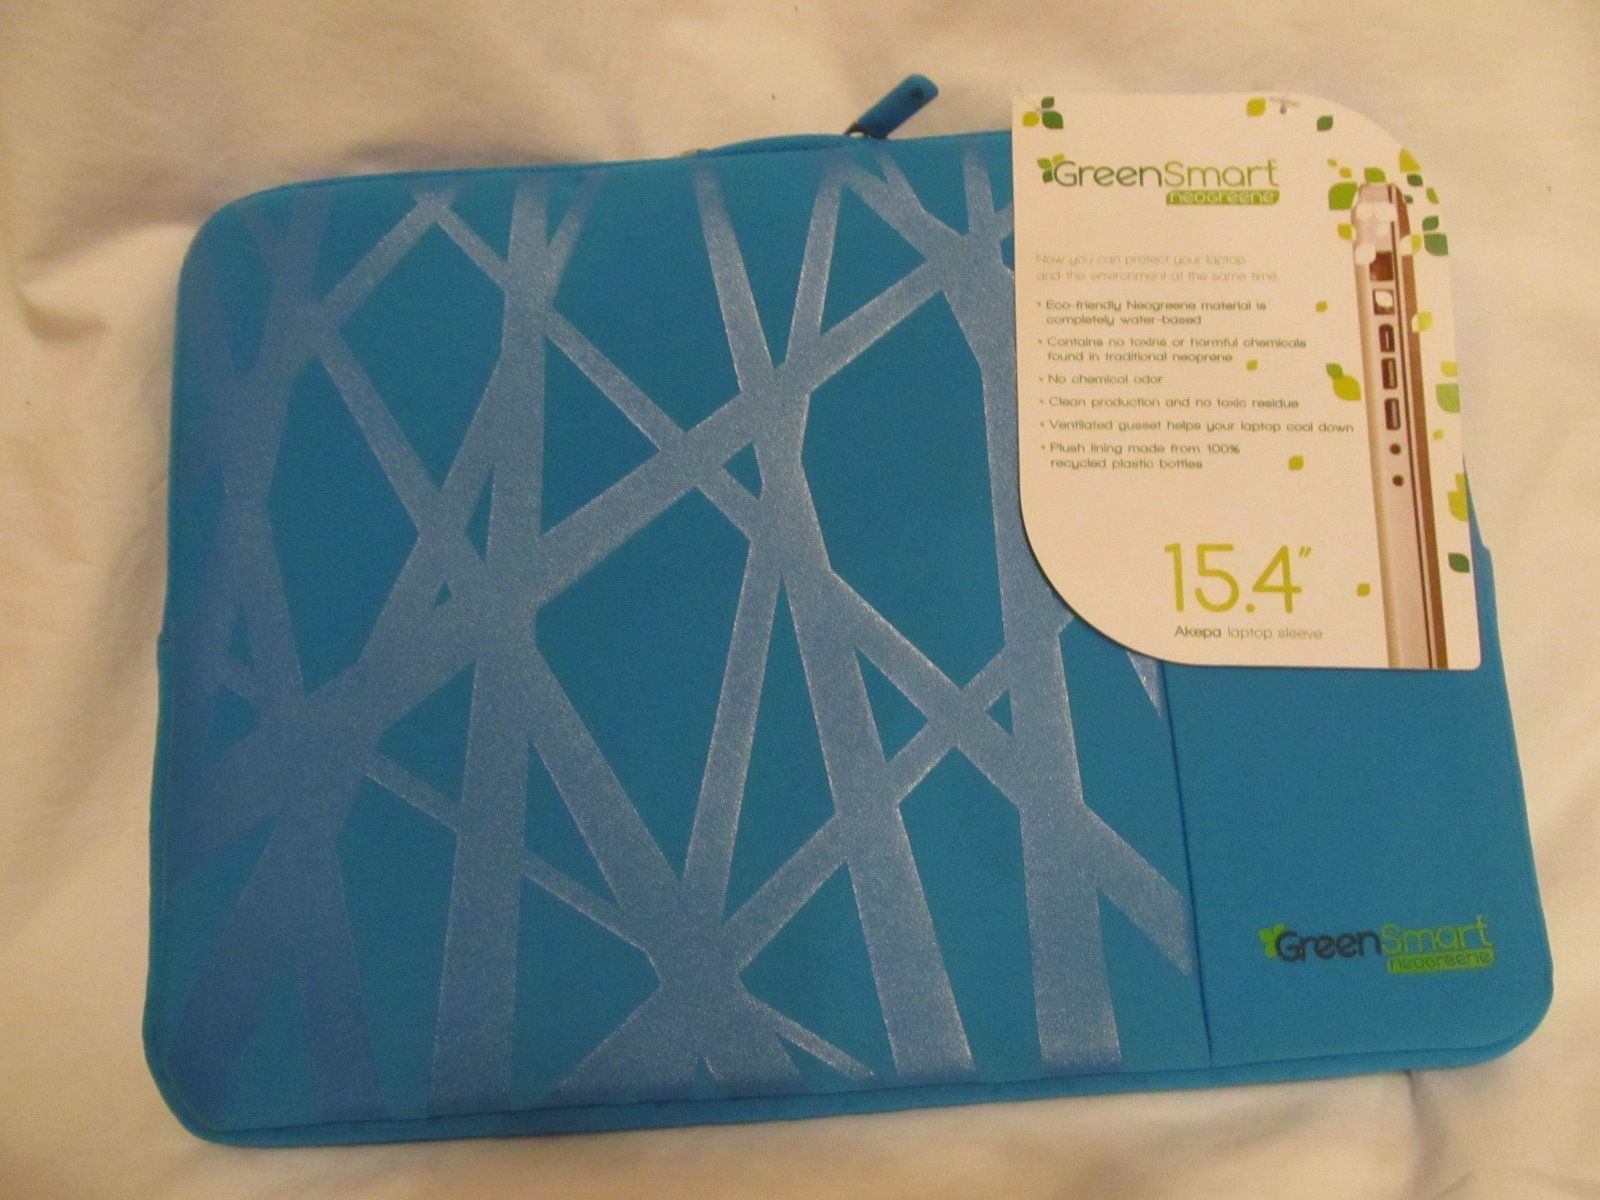 Primary image for GreenSmart Akepa 15.4 inch Laptop/Notebook Bag Blue Ice